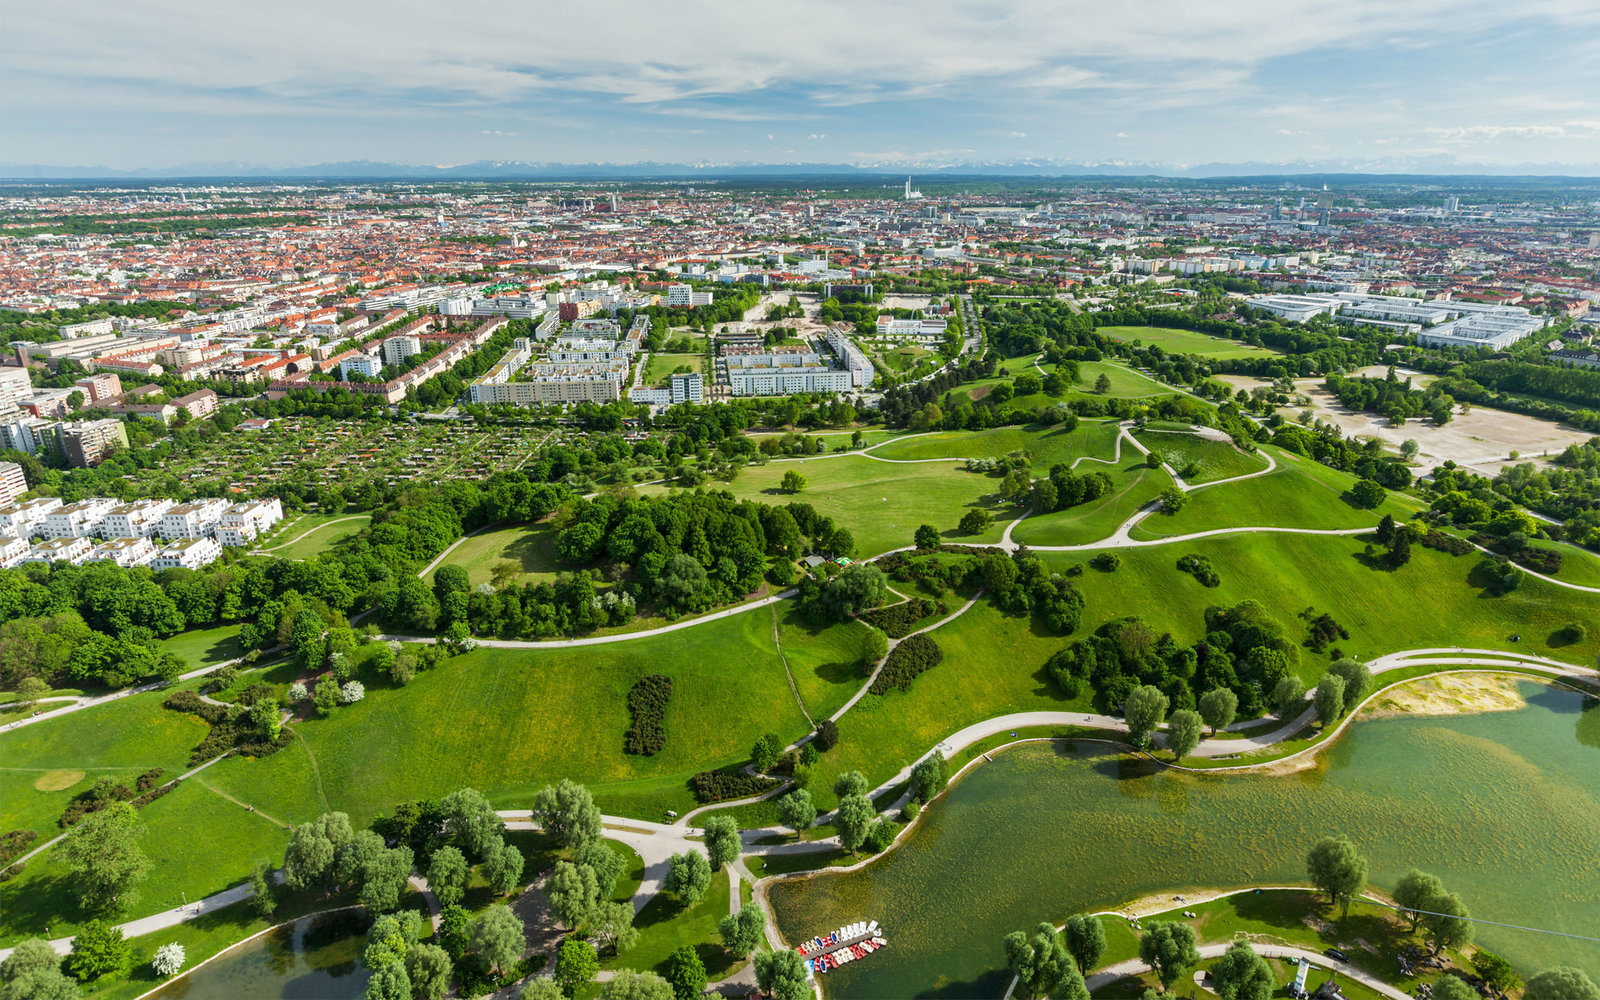 Aerial view of Munich and Olympiapark from Olympiaturm (Olympic Tower), Munich, Bavaria, Germany